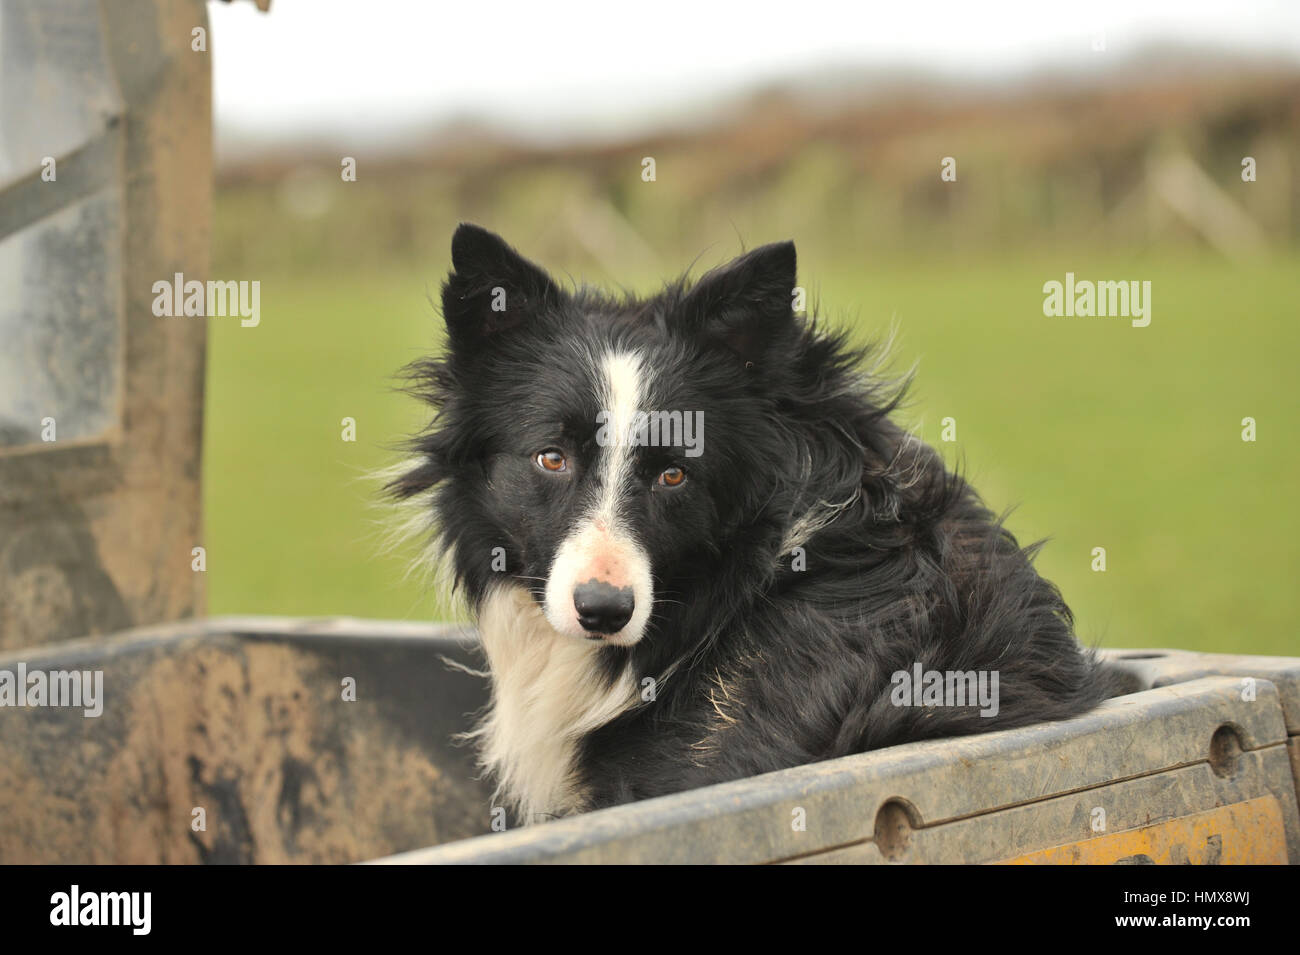 Granja Border Collie en quad Imagen De Stock